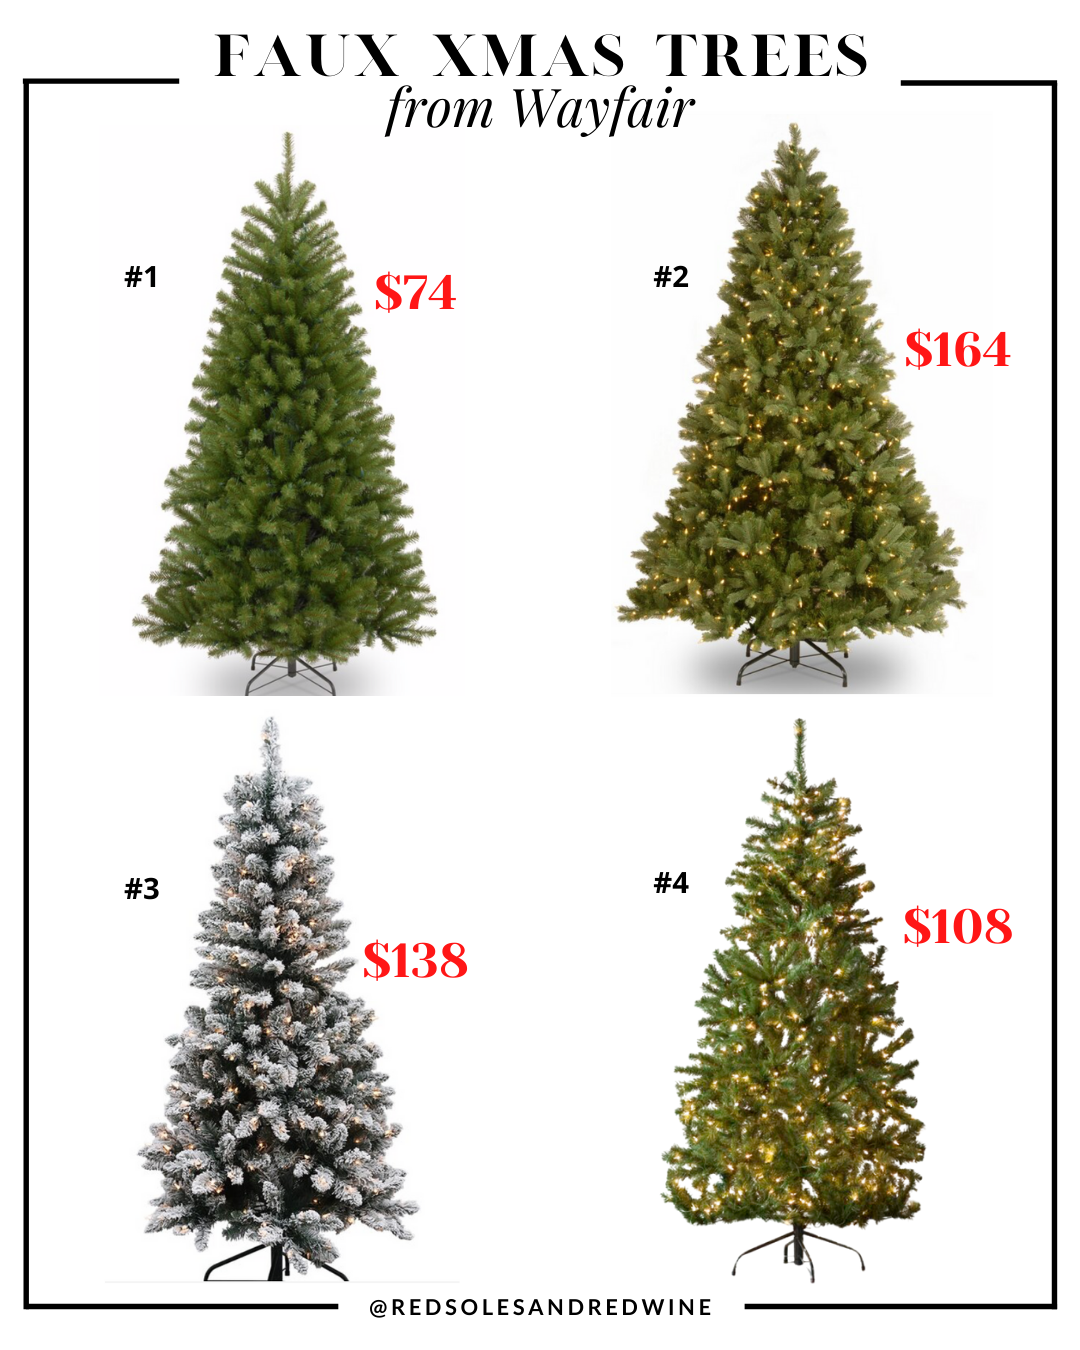 affordable artificial Christmas trees from Wayfair, affordable artificial Christmas trees, affordable faux christmas trees, realistic looking faux christmas trees, faux xmas trees, christmas tree decorating ideas, christmas tree inspiration, faux christmas tree decor inspiration, holiday decor, Red Soles and Red Wine, Jennifer Worman